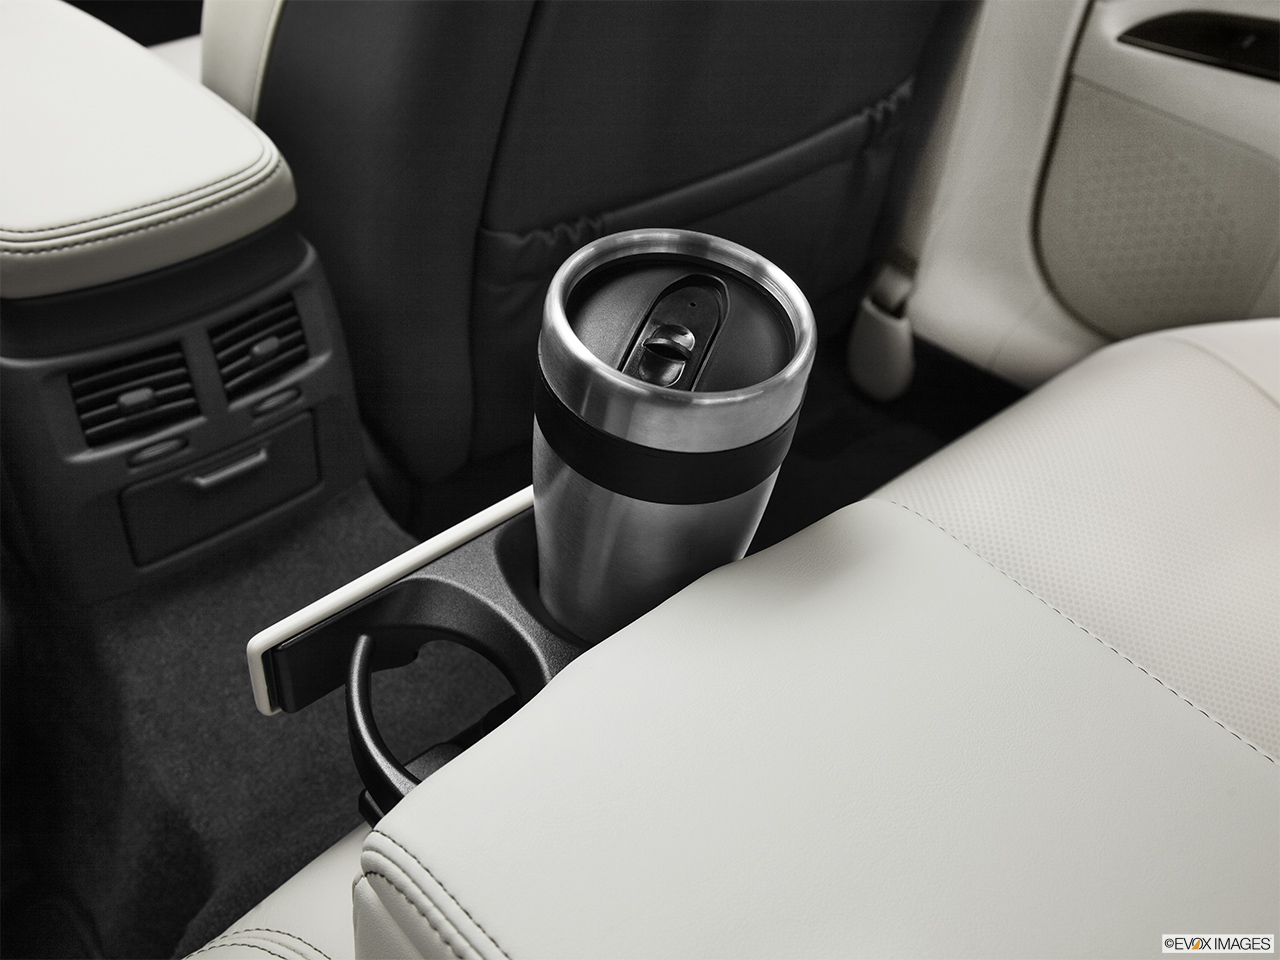 2012 Lexus IS 250 IS250 Cup holder prop (quaternary).